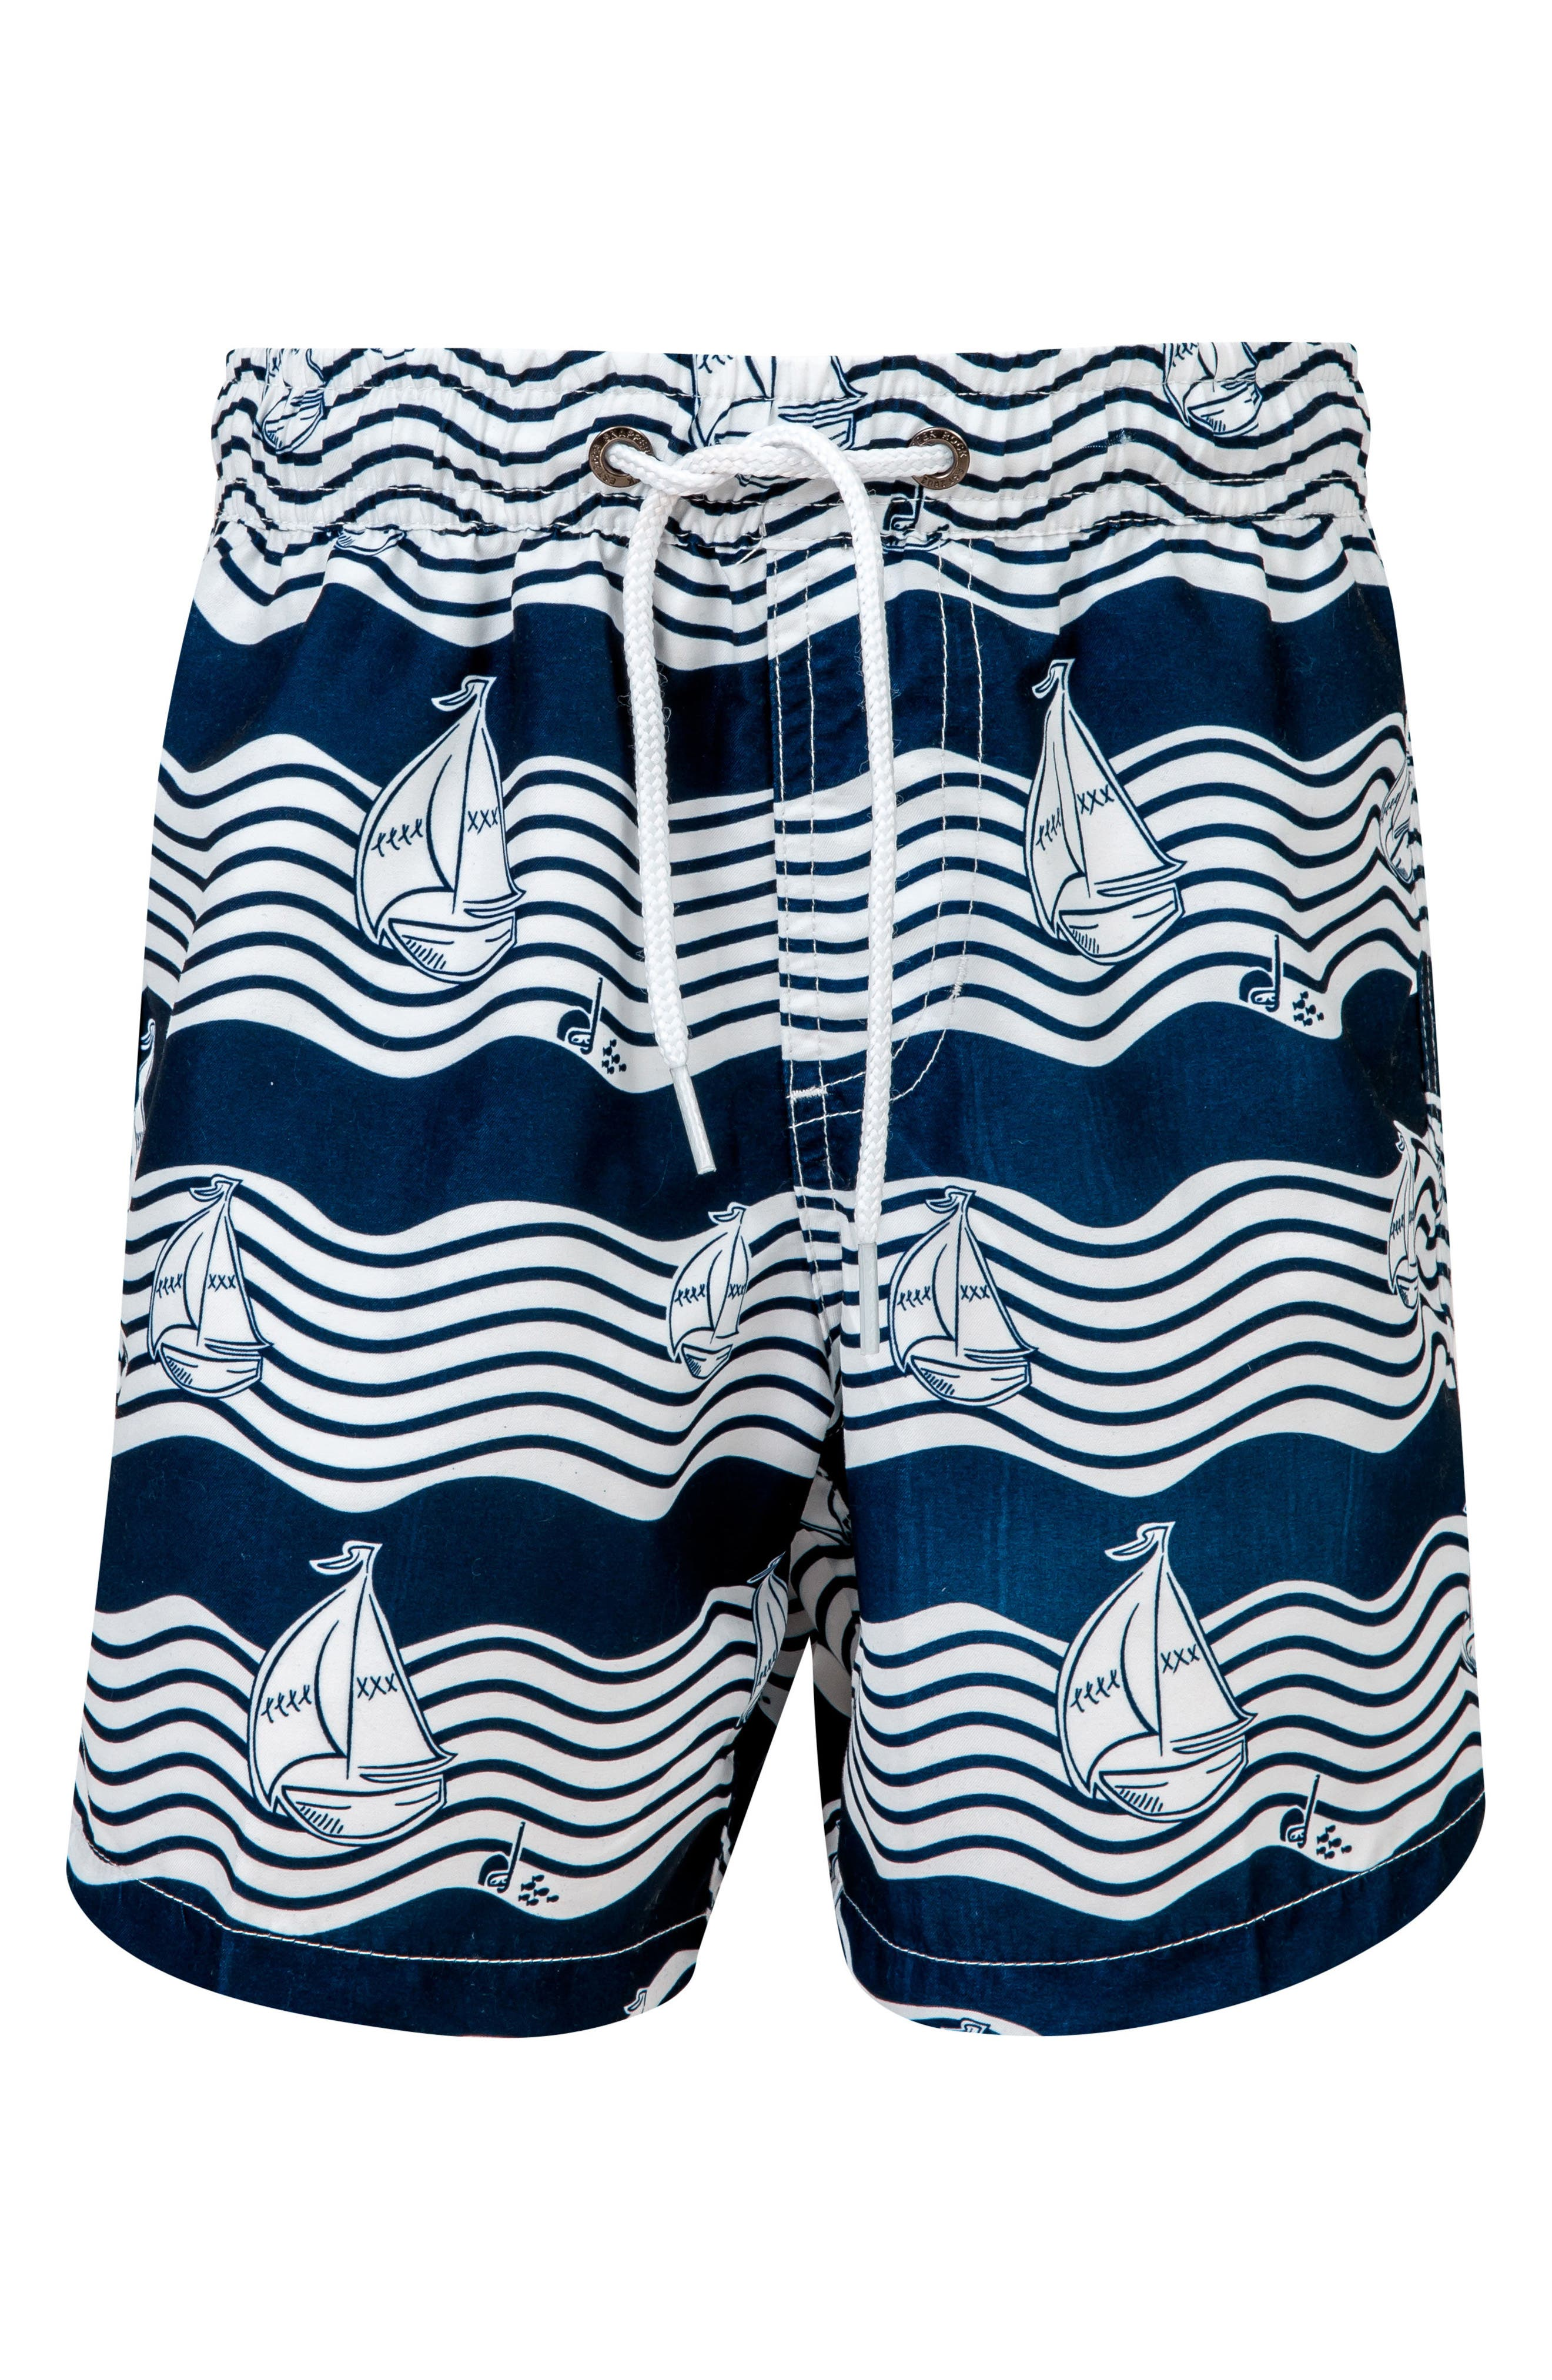 Ocean Explorer Board Shorts,                             Main thumbnail 1, color,                             White/ Navy